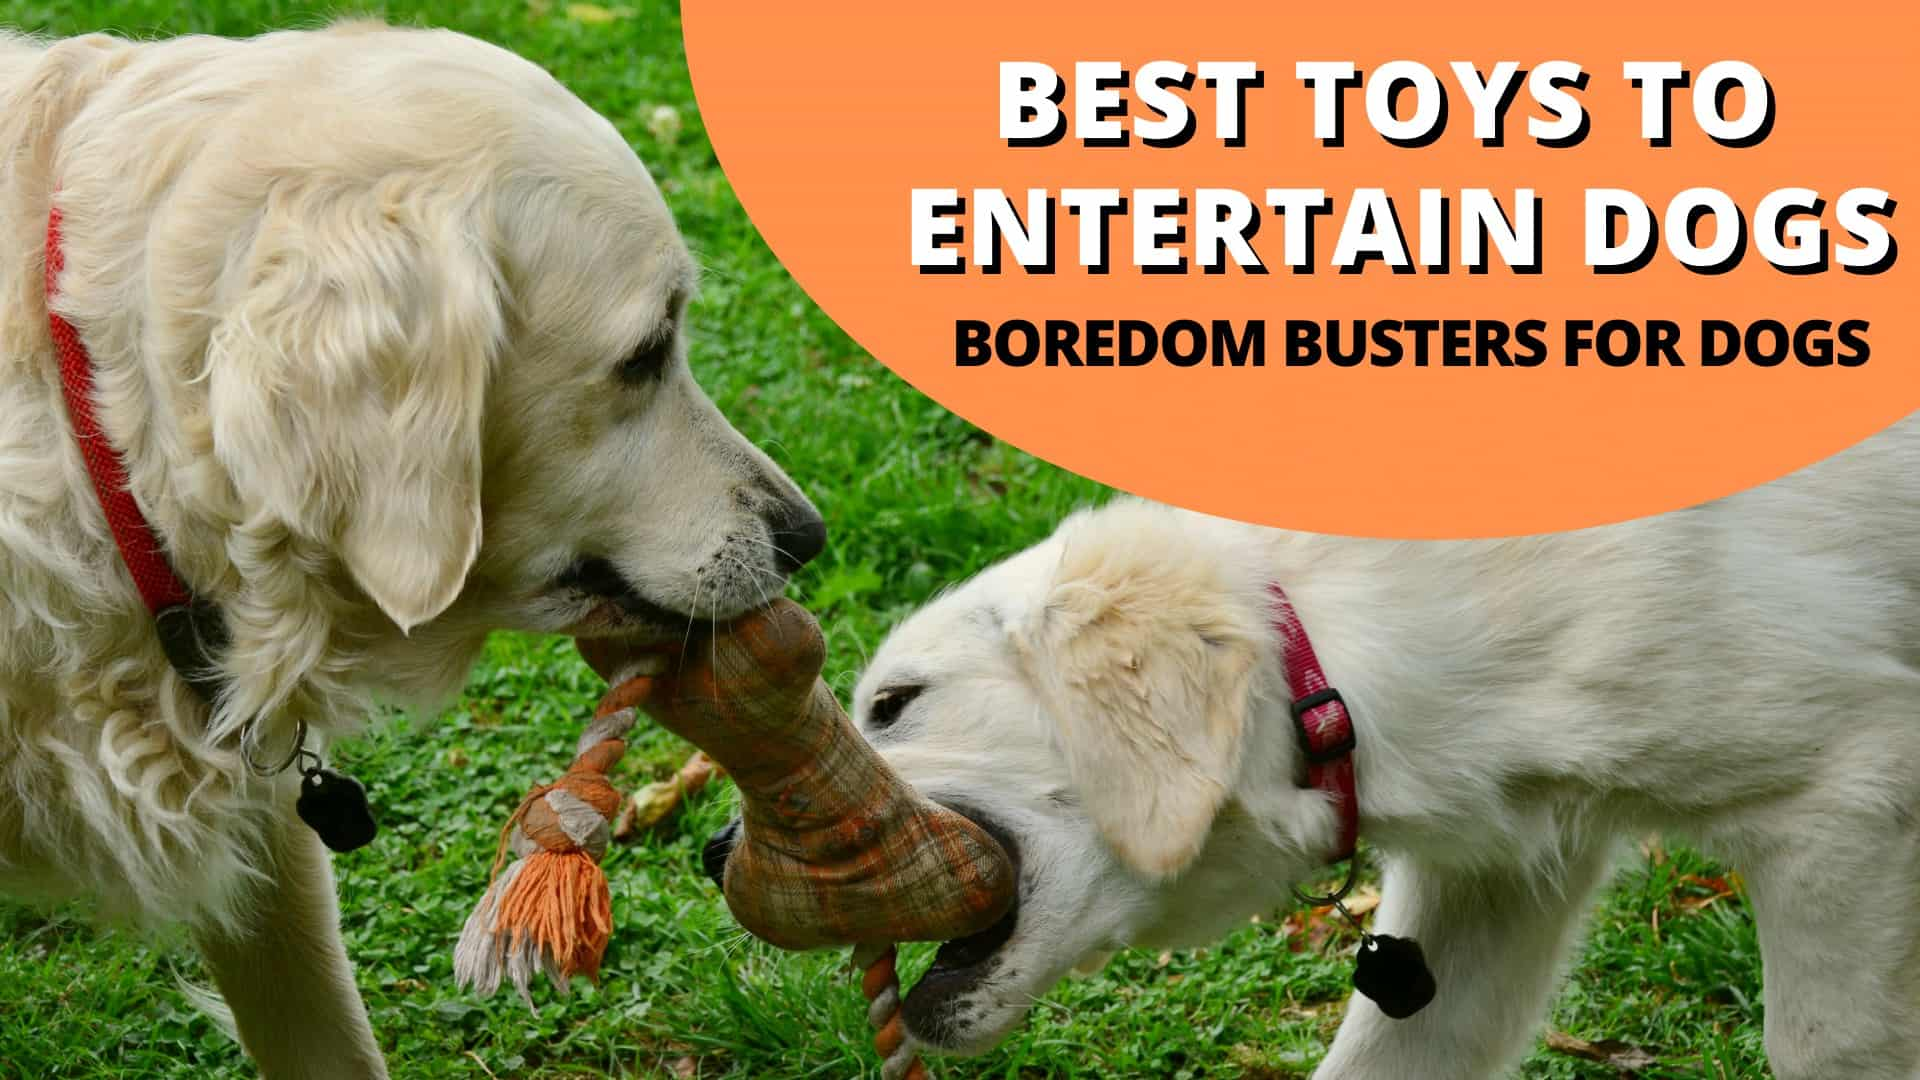 Best Toys To Entertain Dogs (BoredomBustersForDogs)